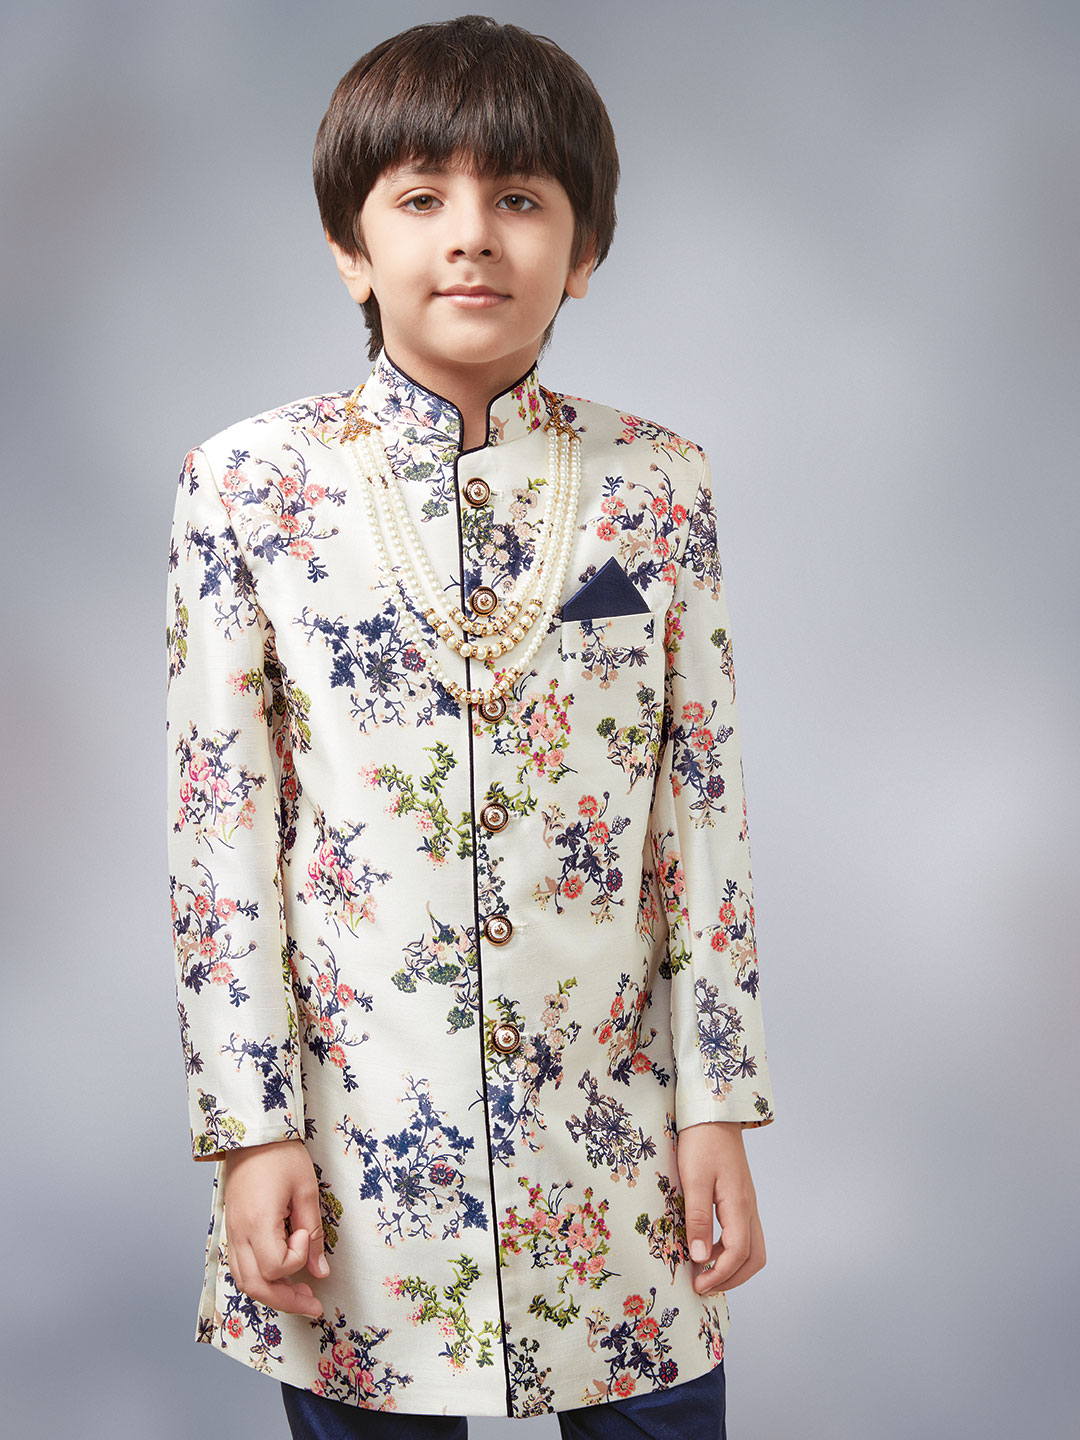 130bce77c0ae Top trends and latest boys indo western outfits 2019